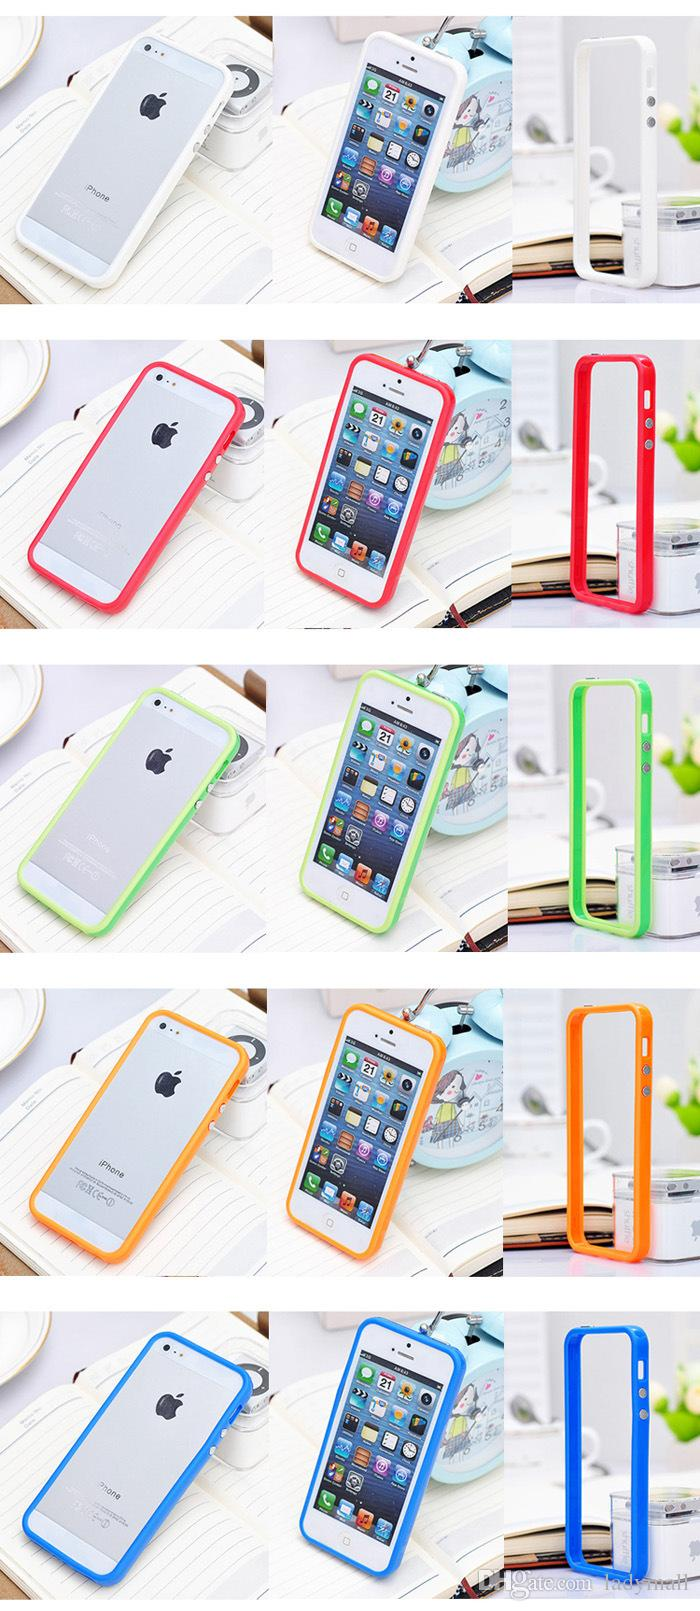 TPU Gel Bumper Frame Metal Button Silicone Case Cover for Apple iphone 6 6S Plus 5 5G 5S 4 4S with retail package boxes